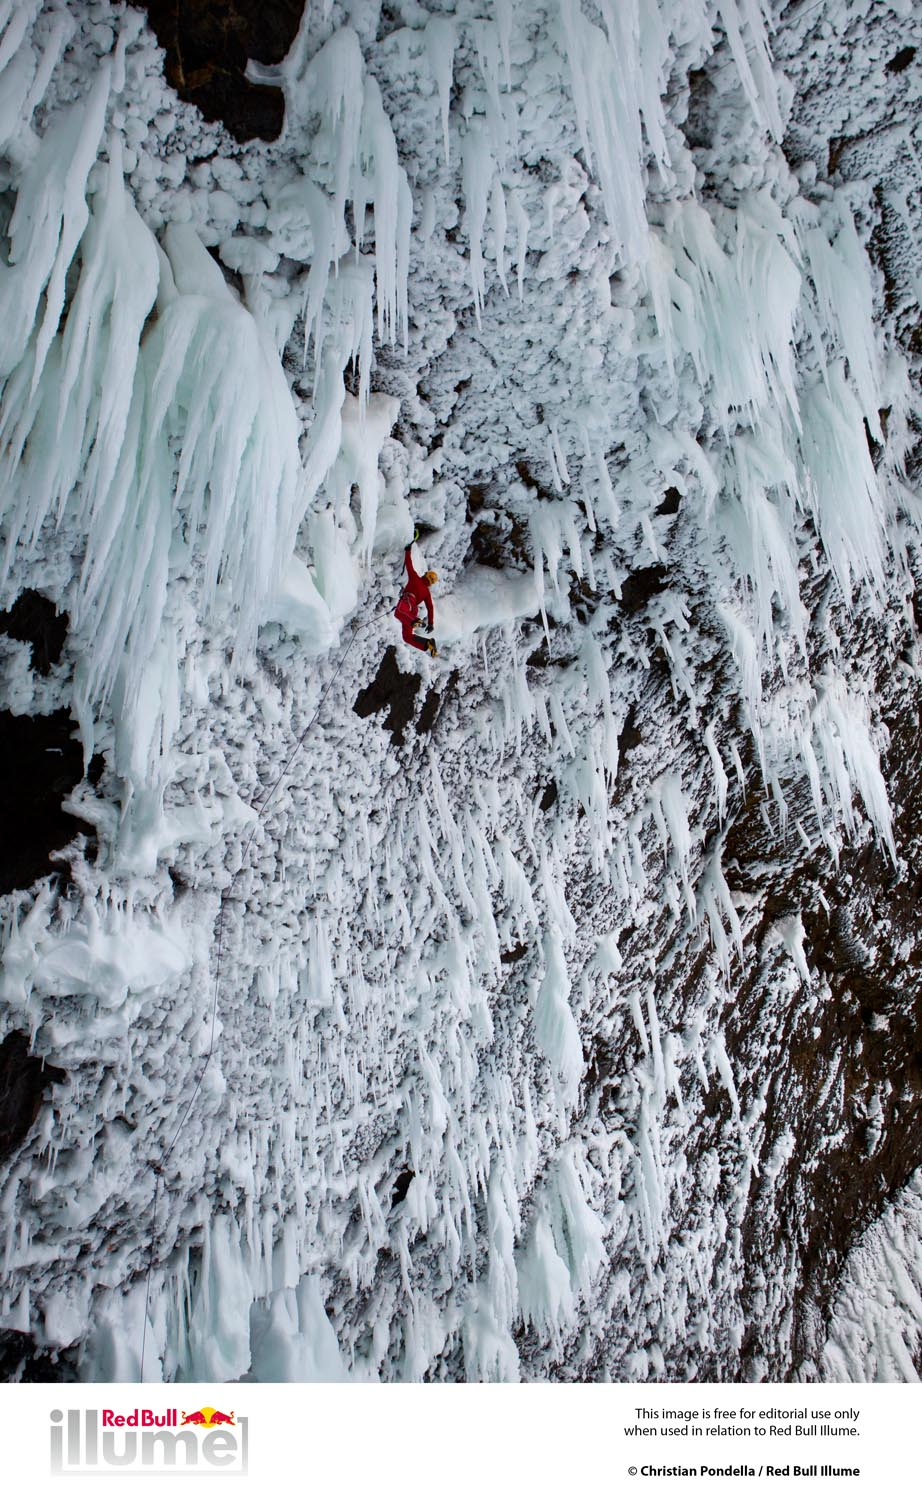 Location: Helmcken Falls, BC - Canada Athlete: Tim Emmett Photographer: Christian Pondella